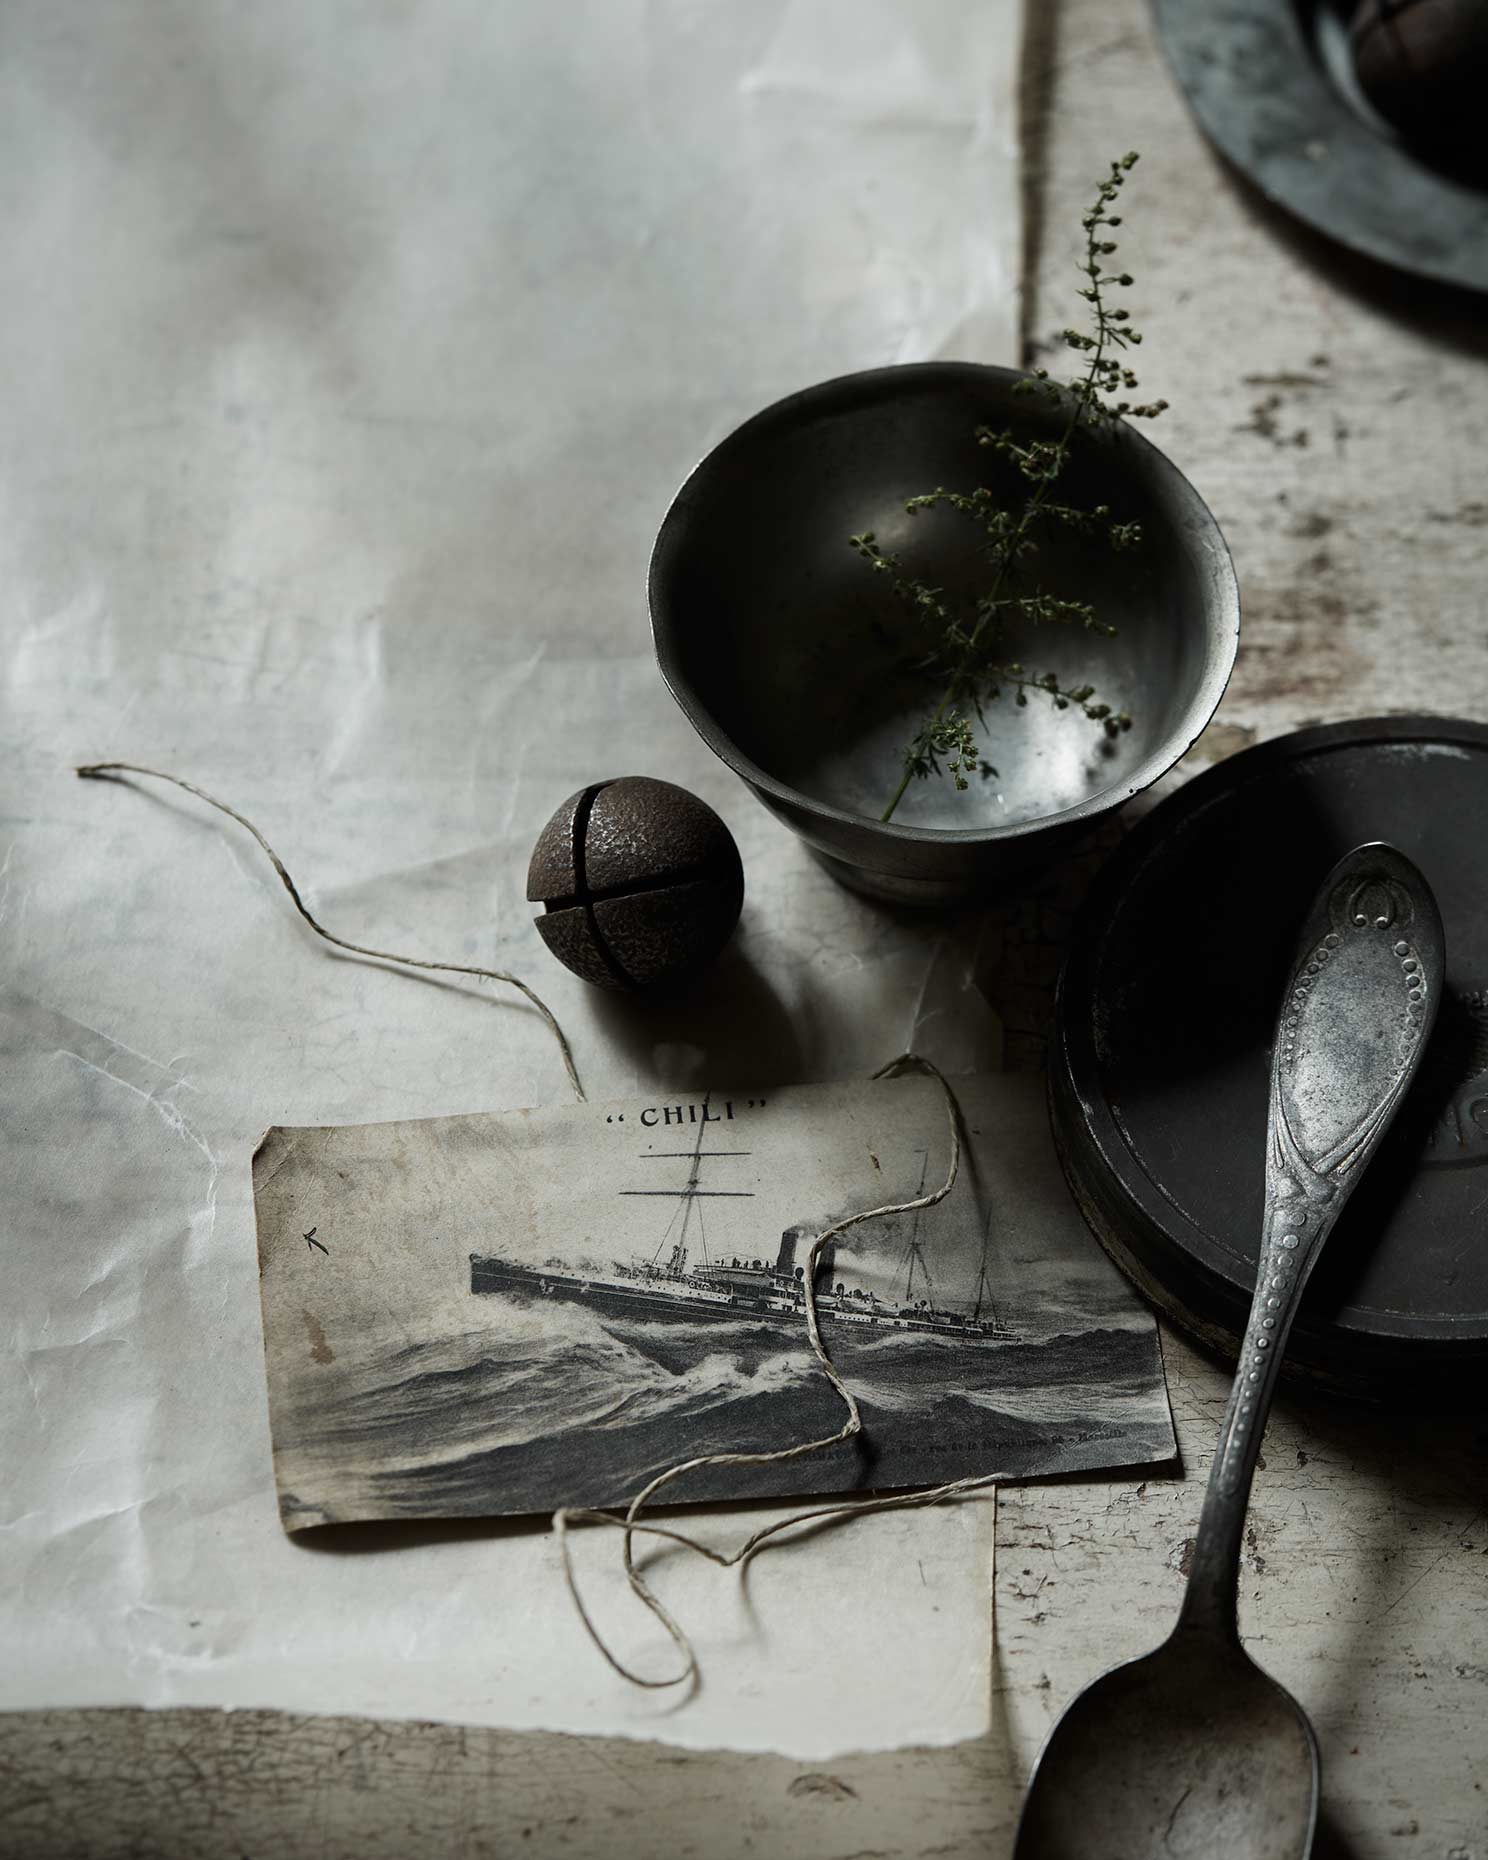 Artistic dark still life photograph with postcard and kitchen items